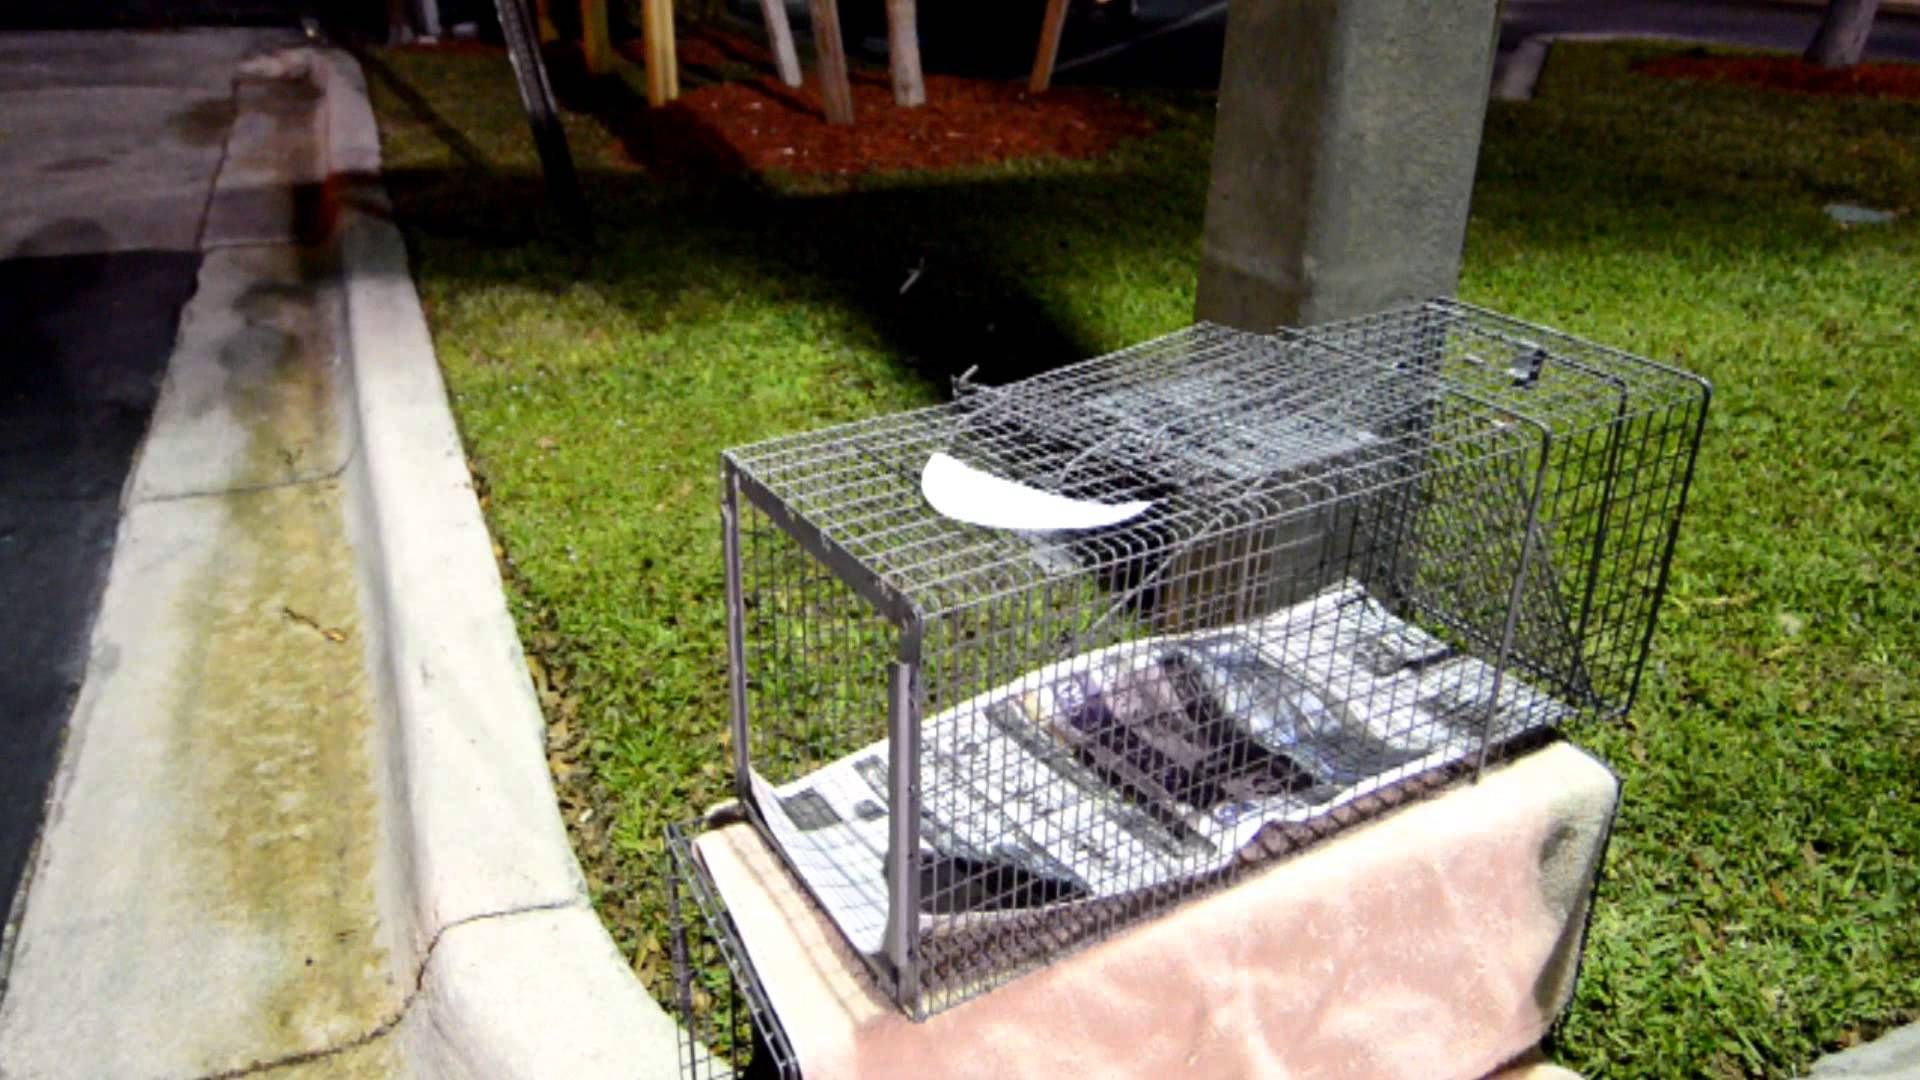 How to use a humane cat trap for feral cats feral cats